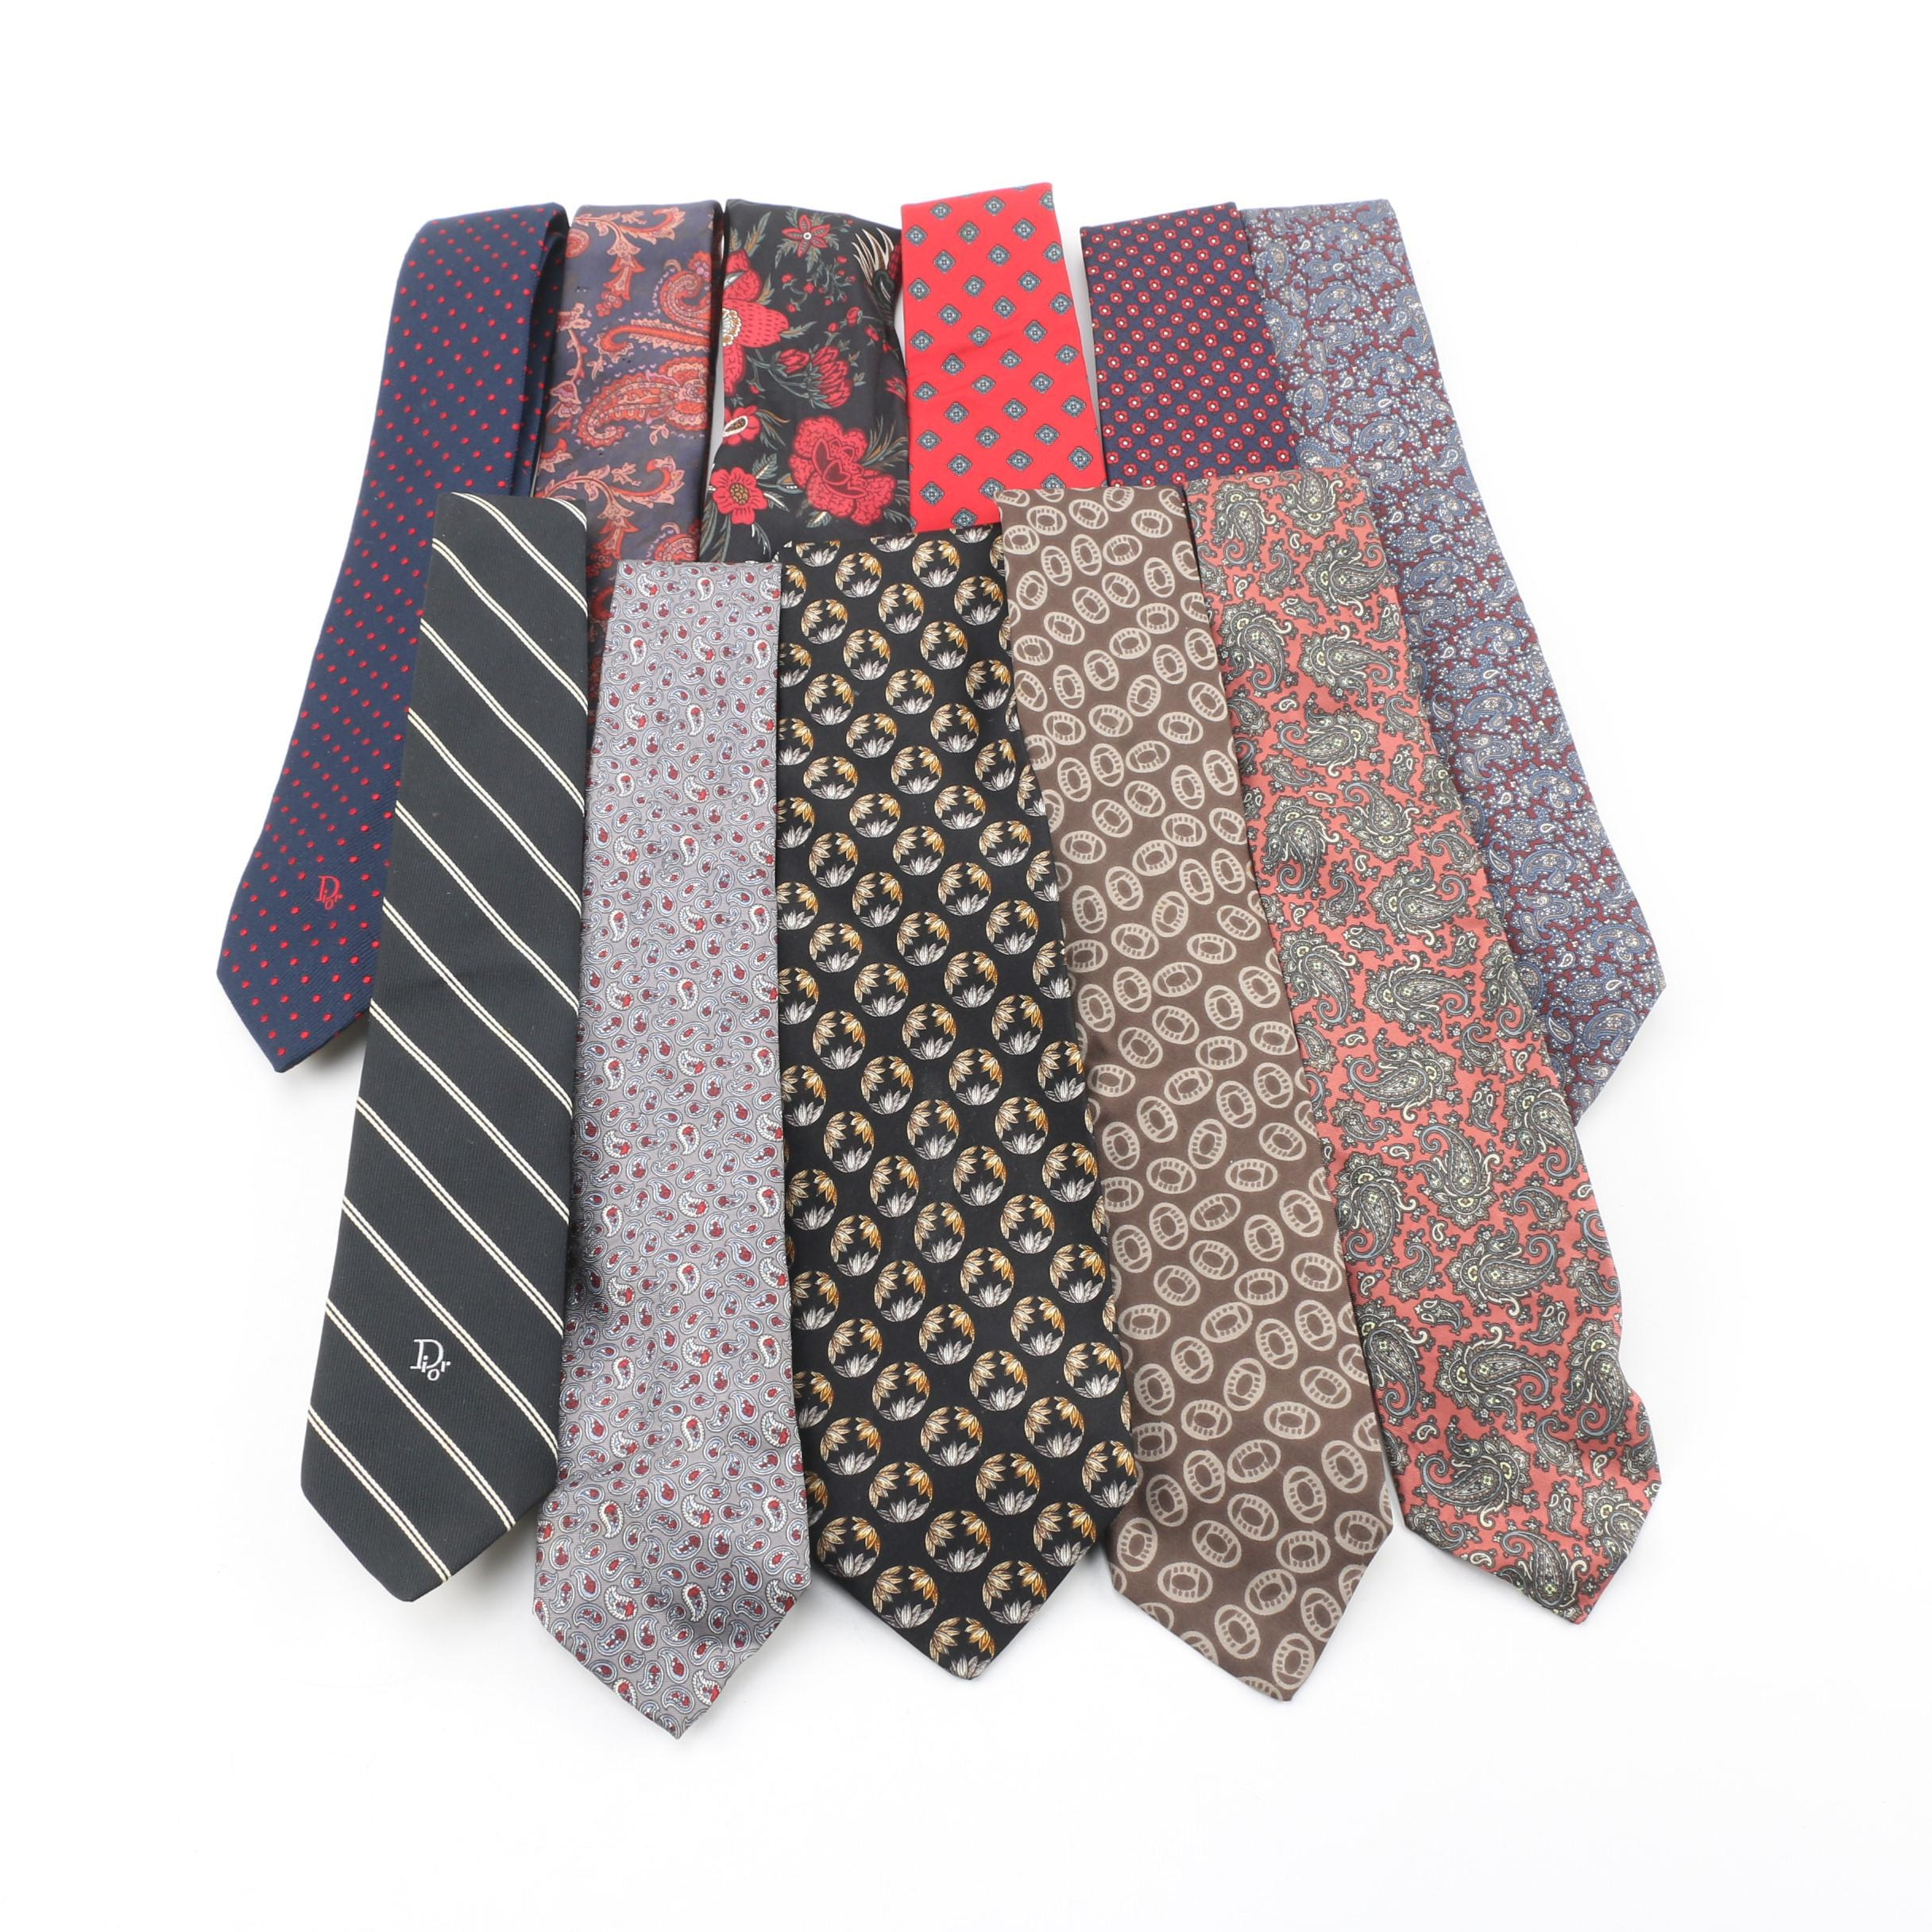 Christian Dior, Valentino, Brooks Brothers and other Designer Neckties, 1980s